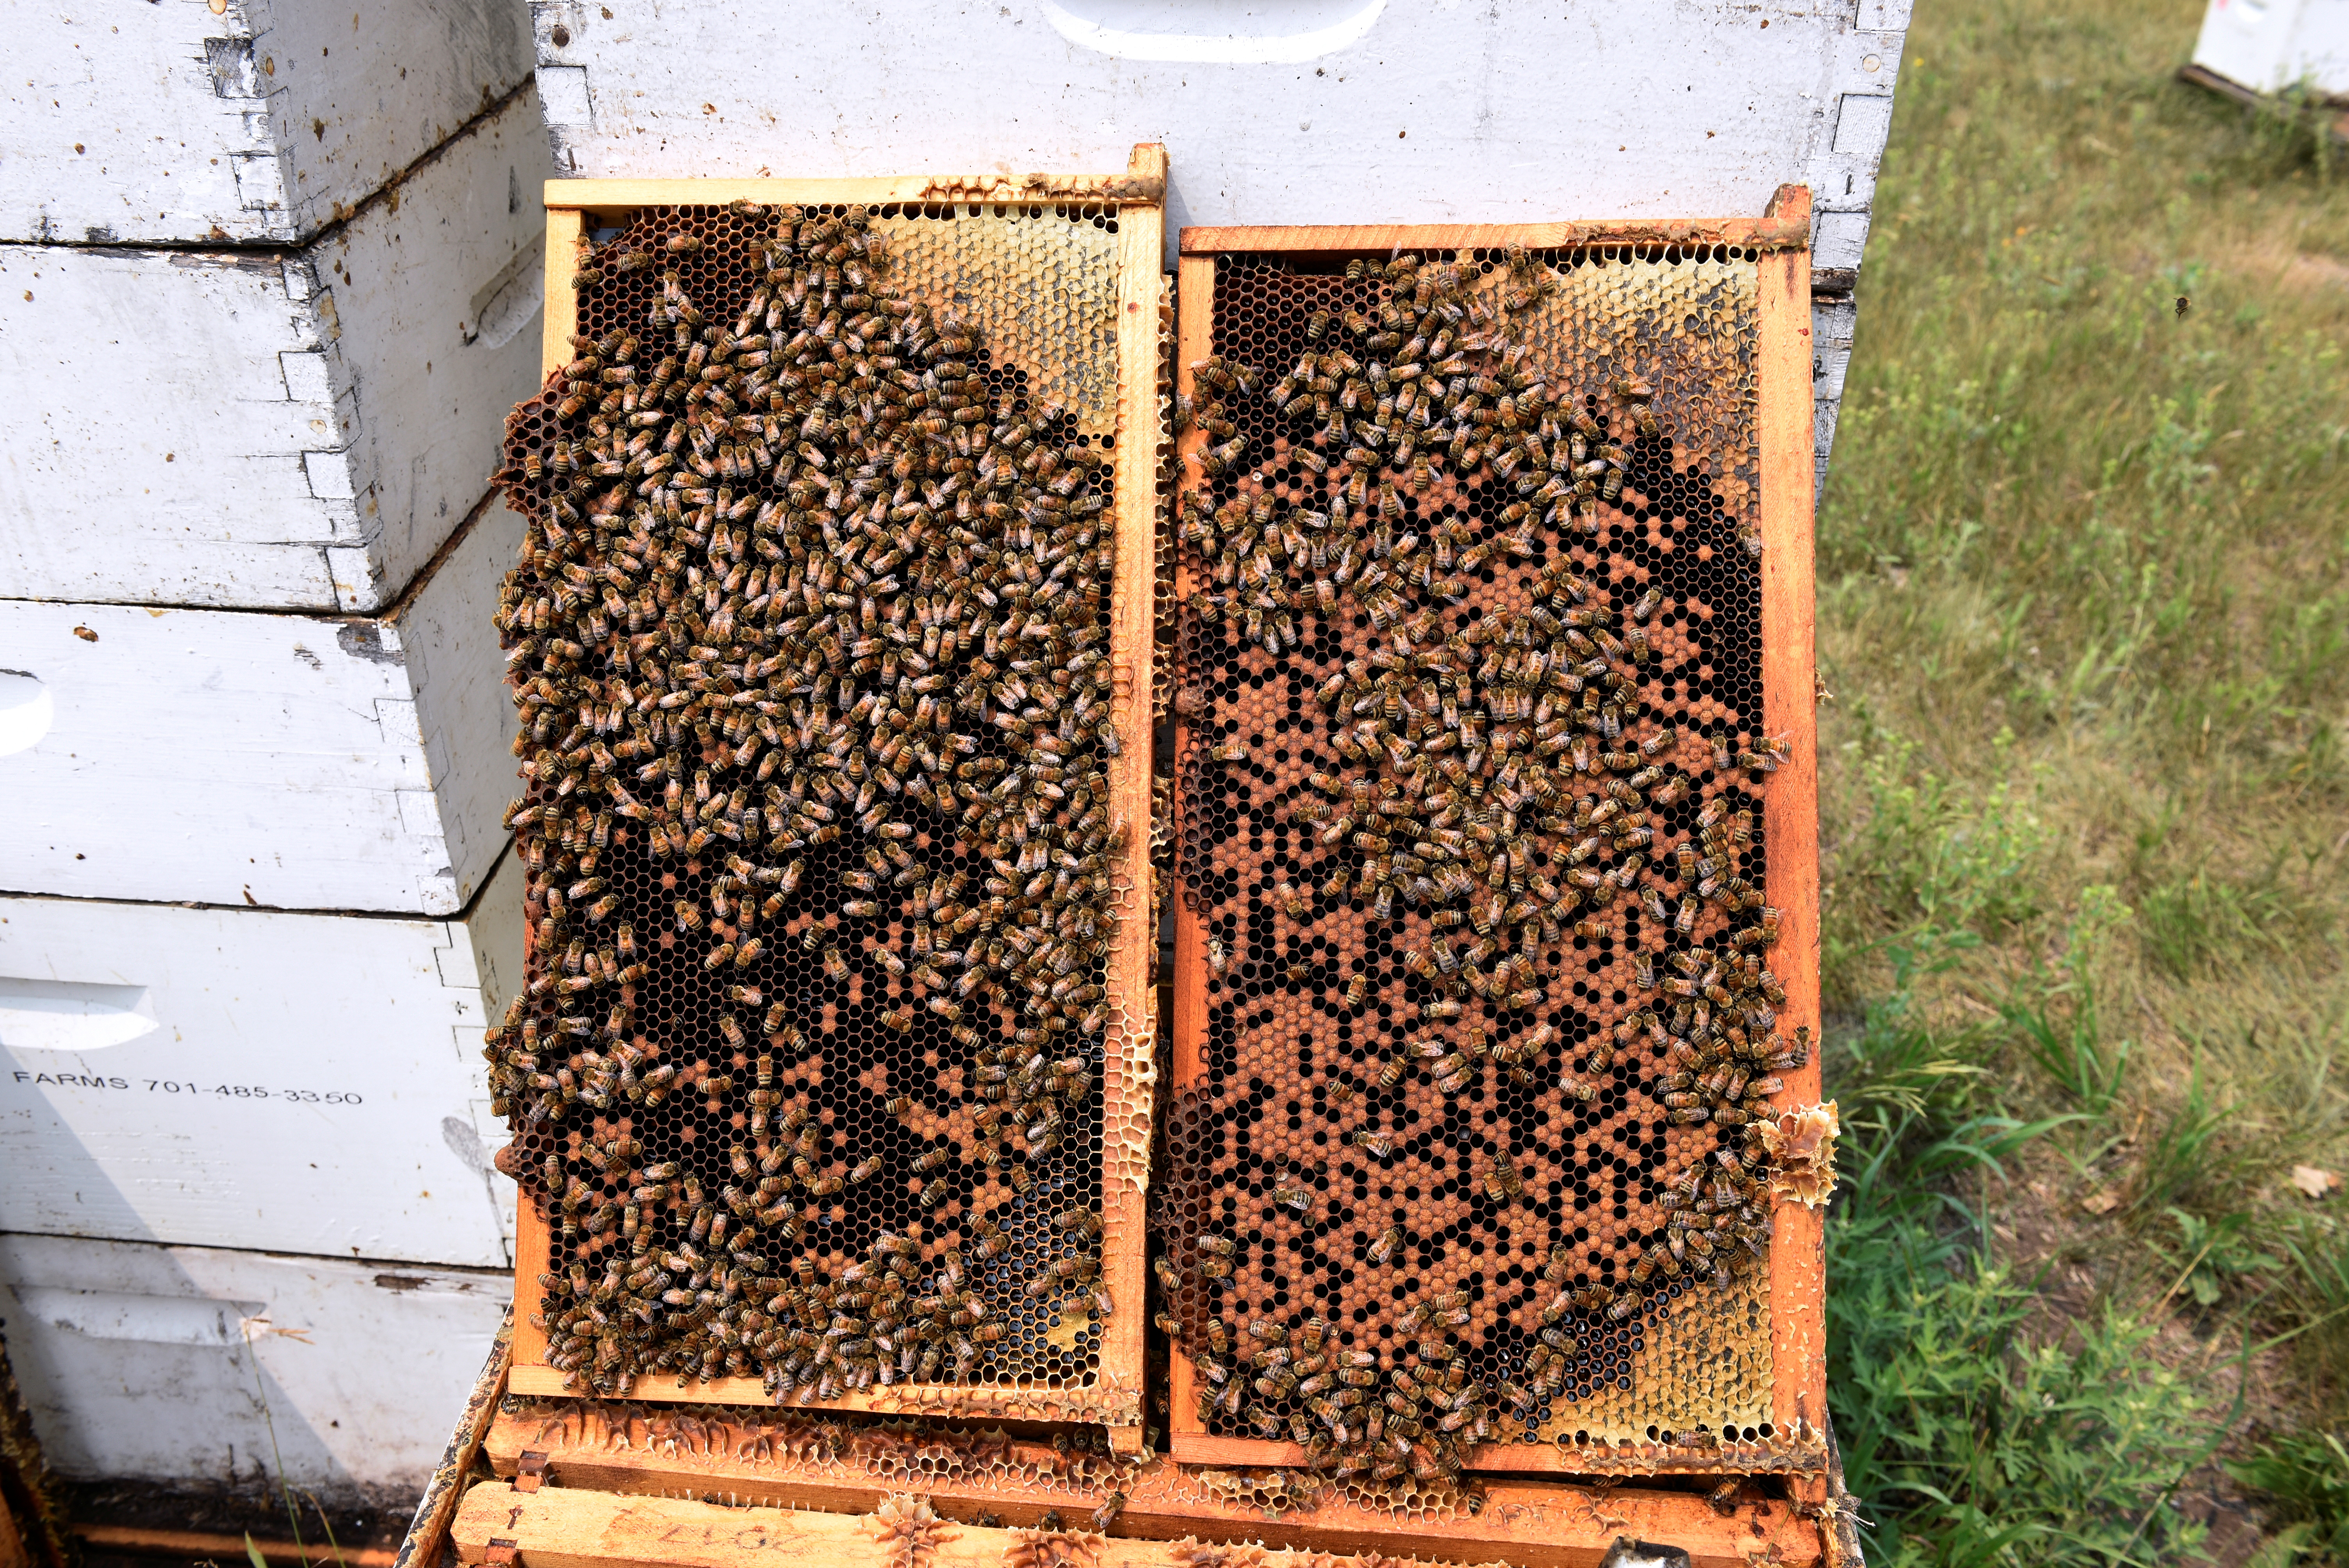 Bee hives showing a lack of honey production at Miller Honey Farms in Gackle, North Dakota, U.S., July 30, 2021. Drought-weakened bee colonies are producing a small honey crop in North Dakota, a major U.S. honey producer. REUTERS/Dan Koeck